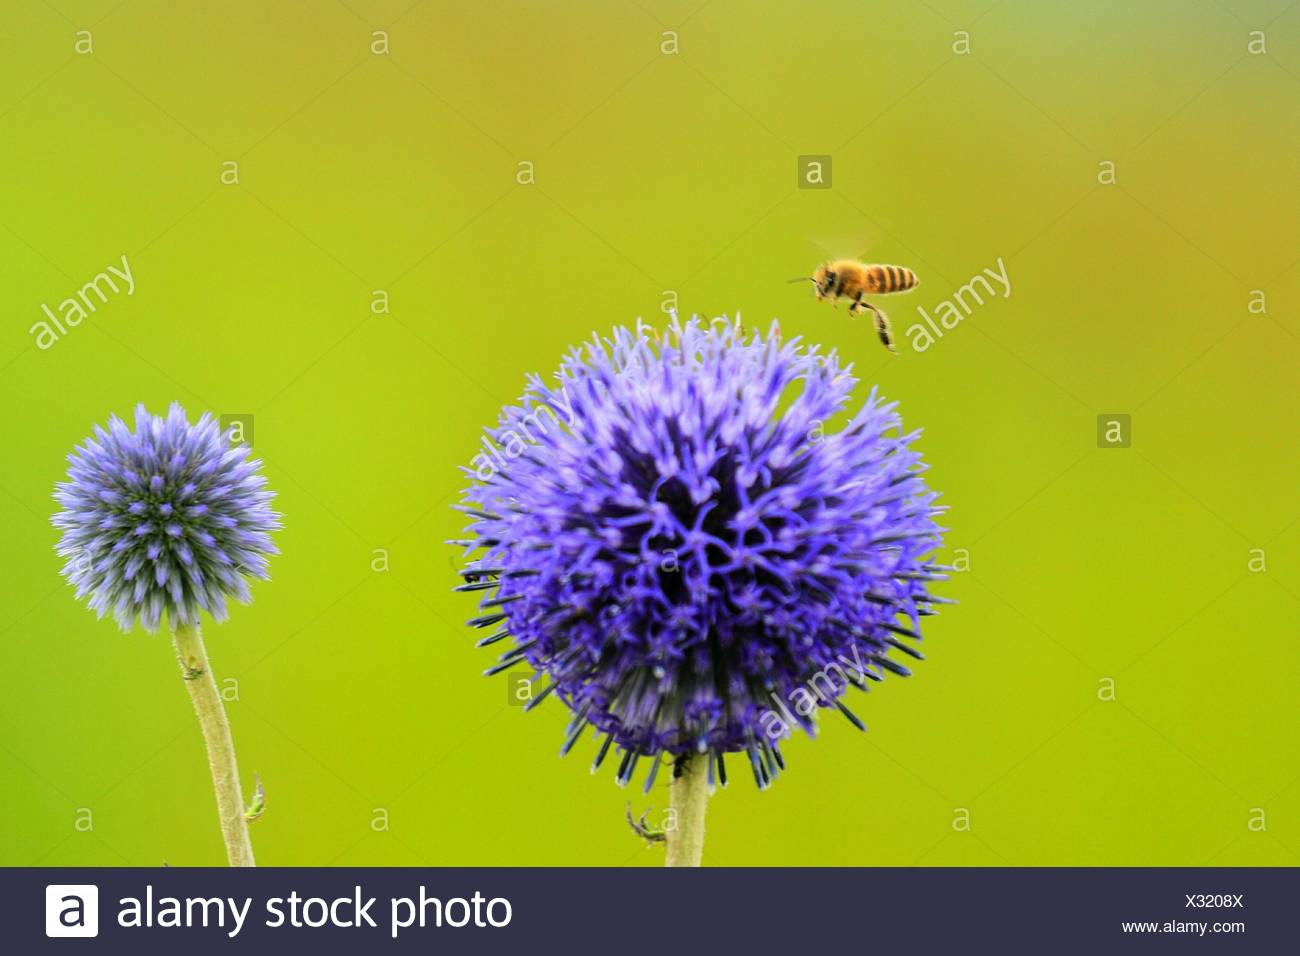 Close-Up Of Allium Flowers Blooming Outdoors - Stock Image